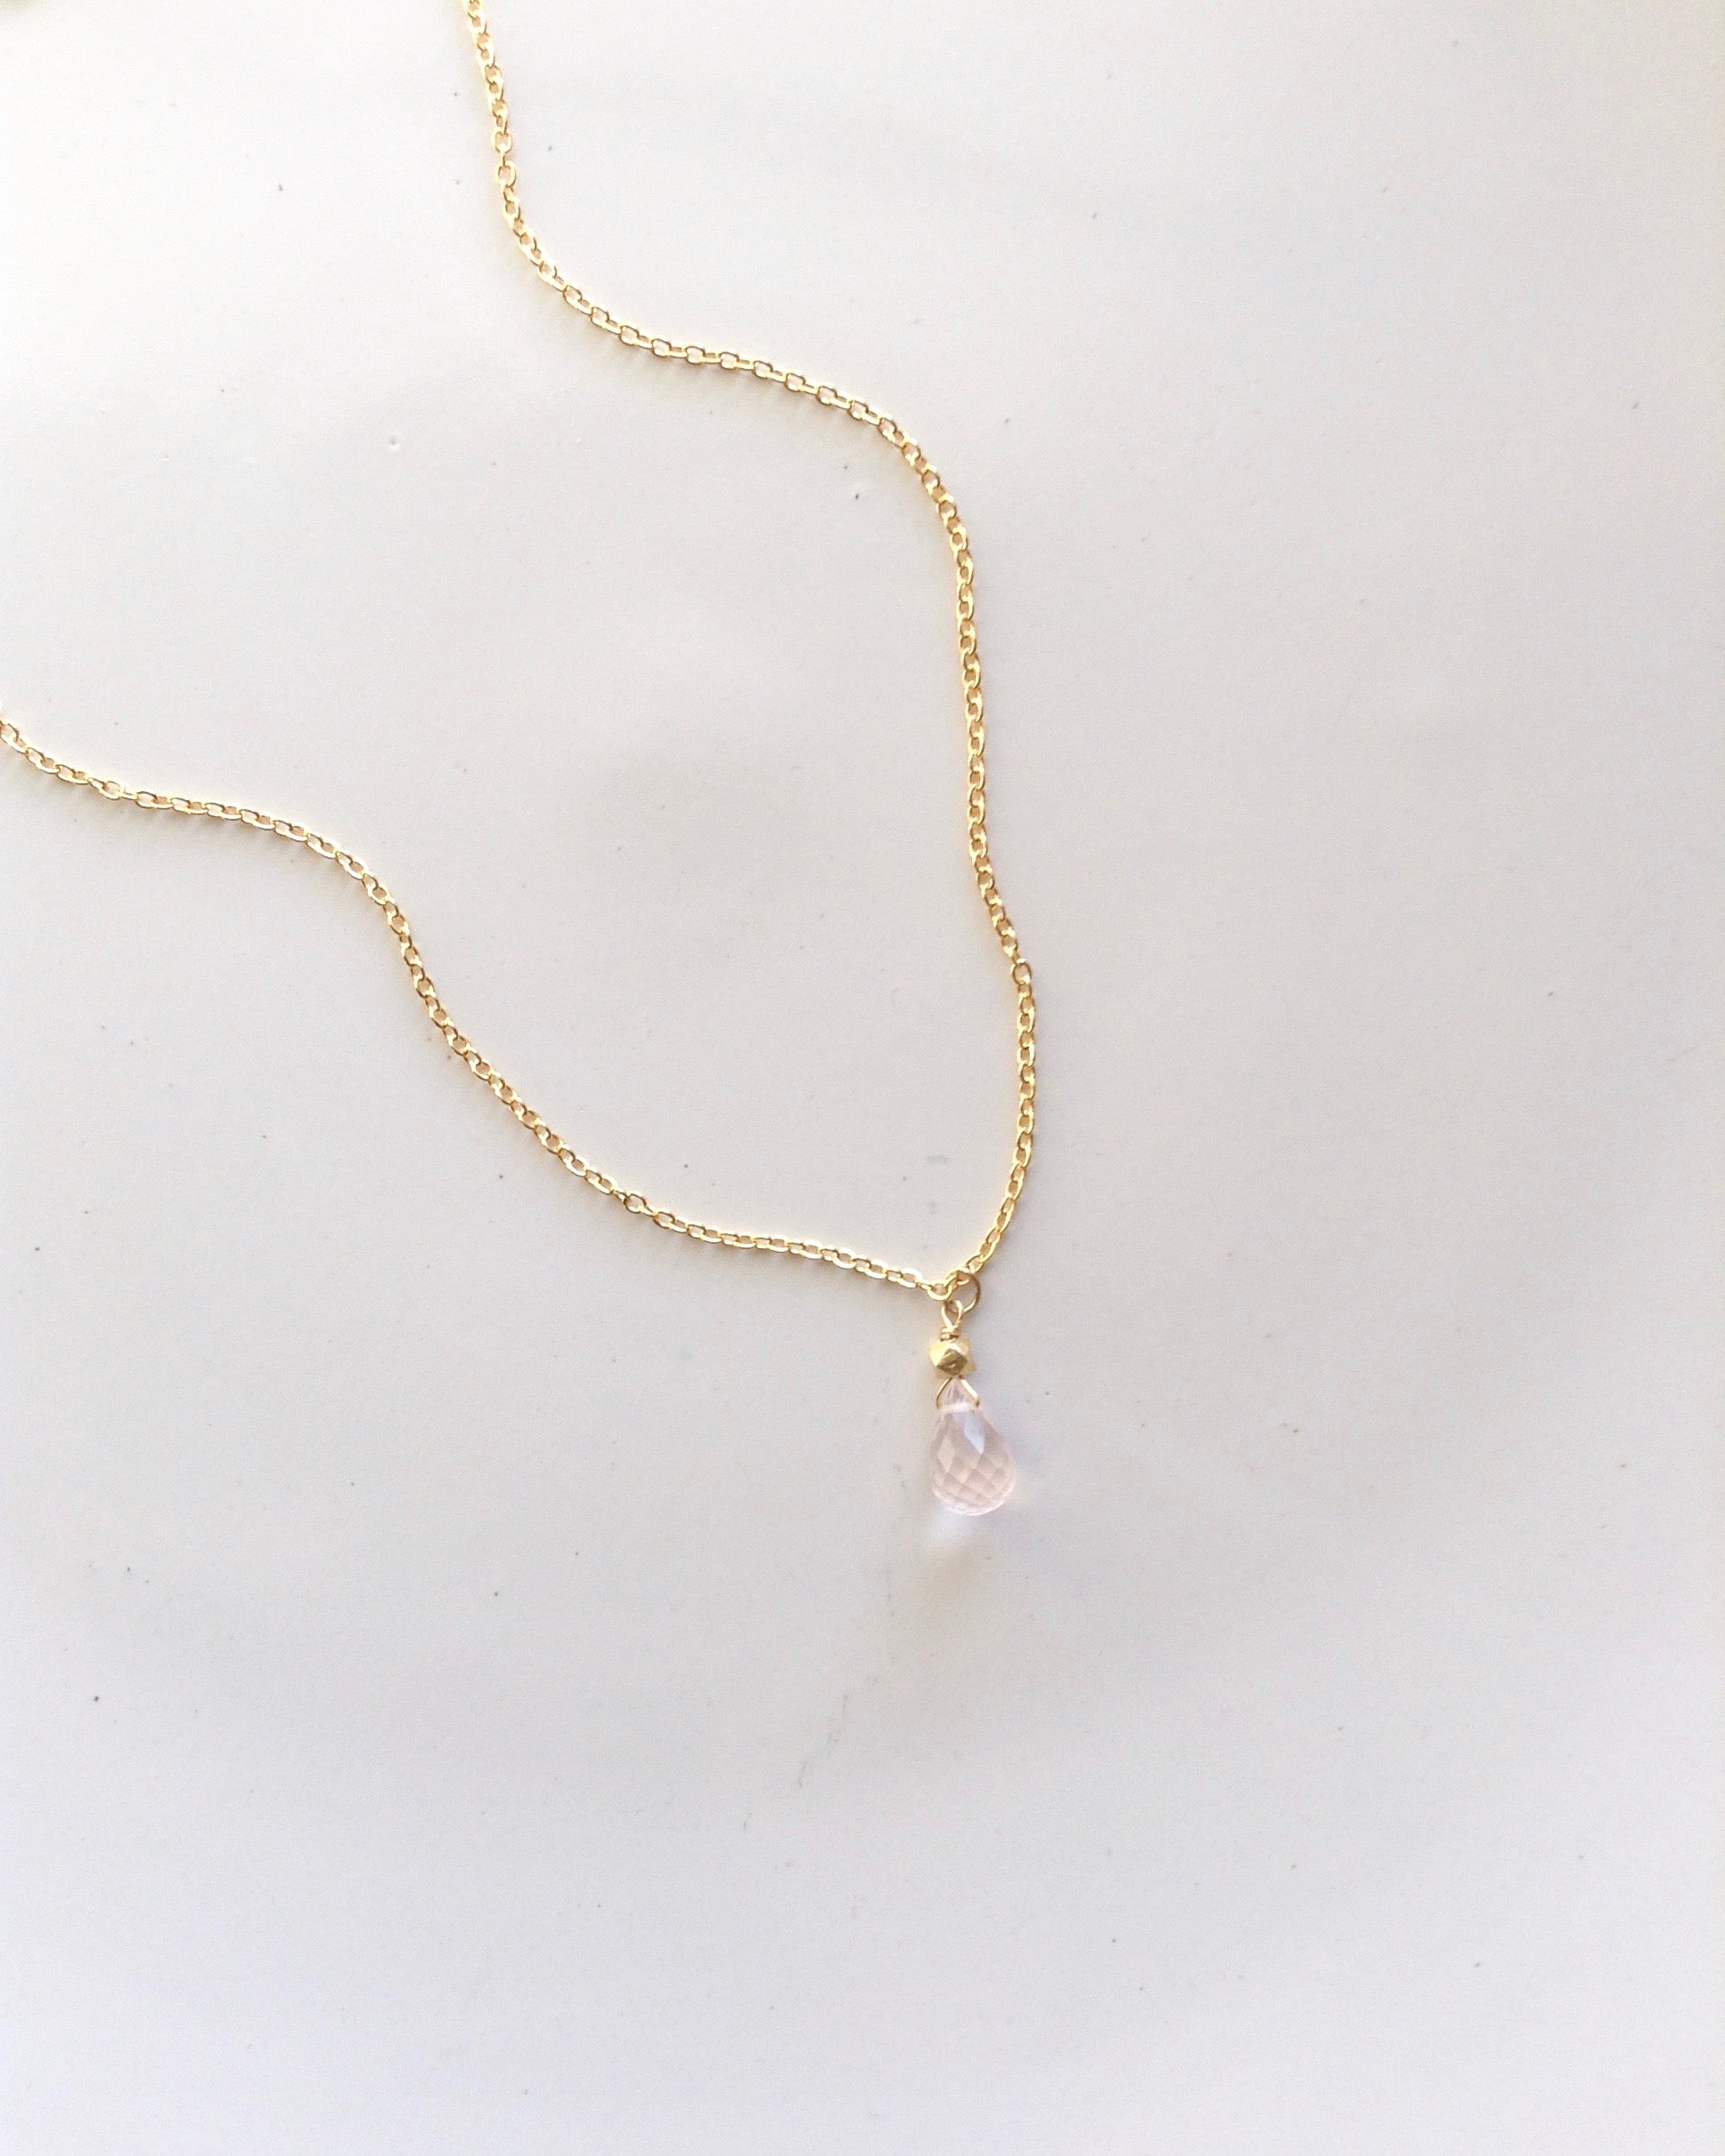 Delicate Rose Quartz Necklace in Gold Filled or Sterling Silver | Appreciation Necklace Gift | IB Jewelry